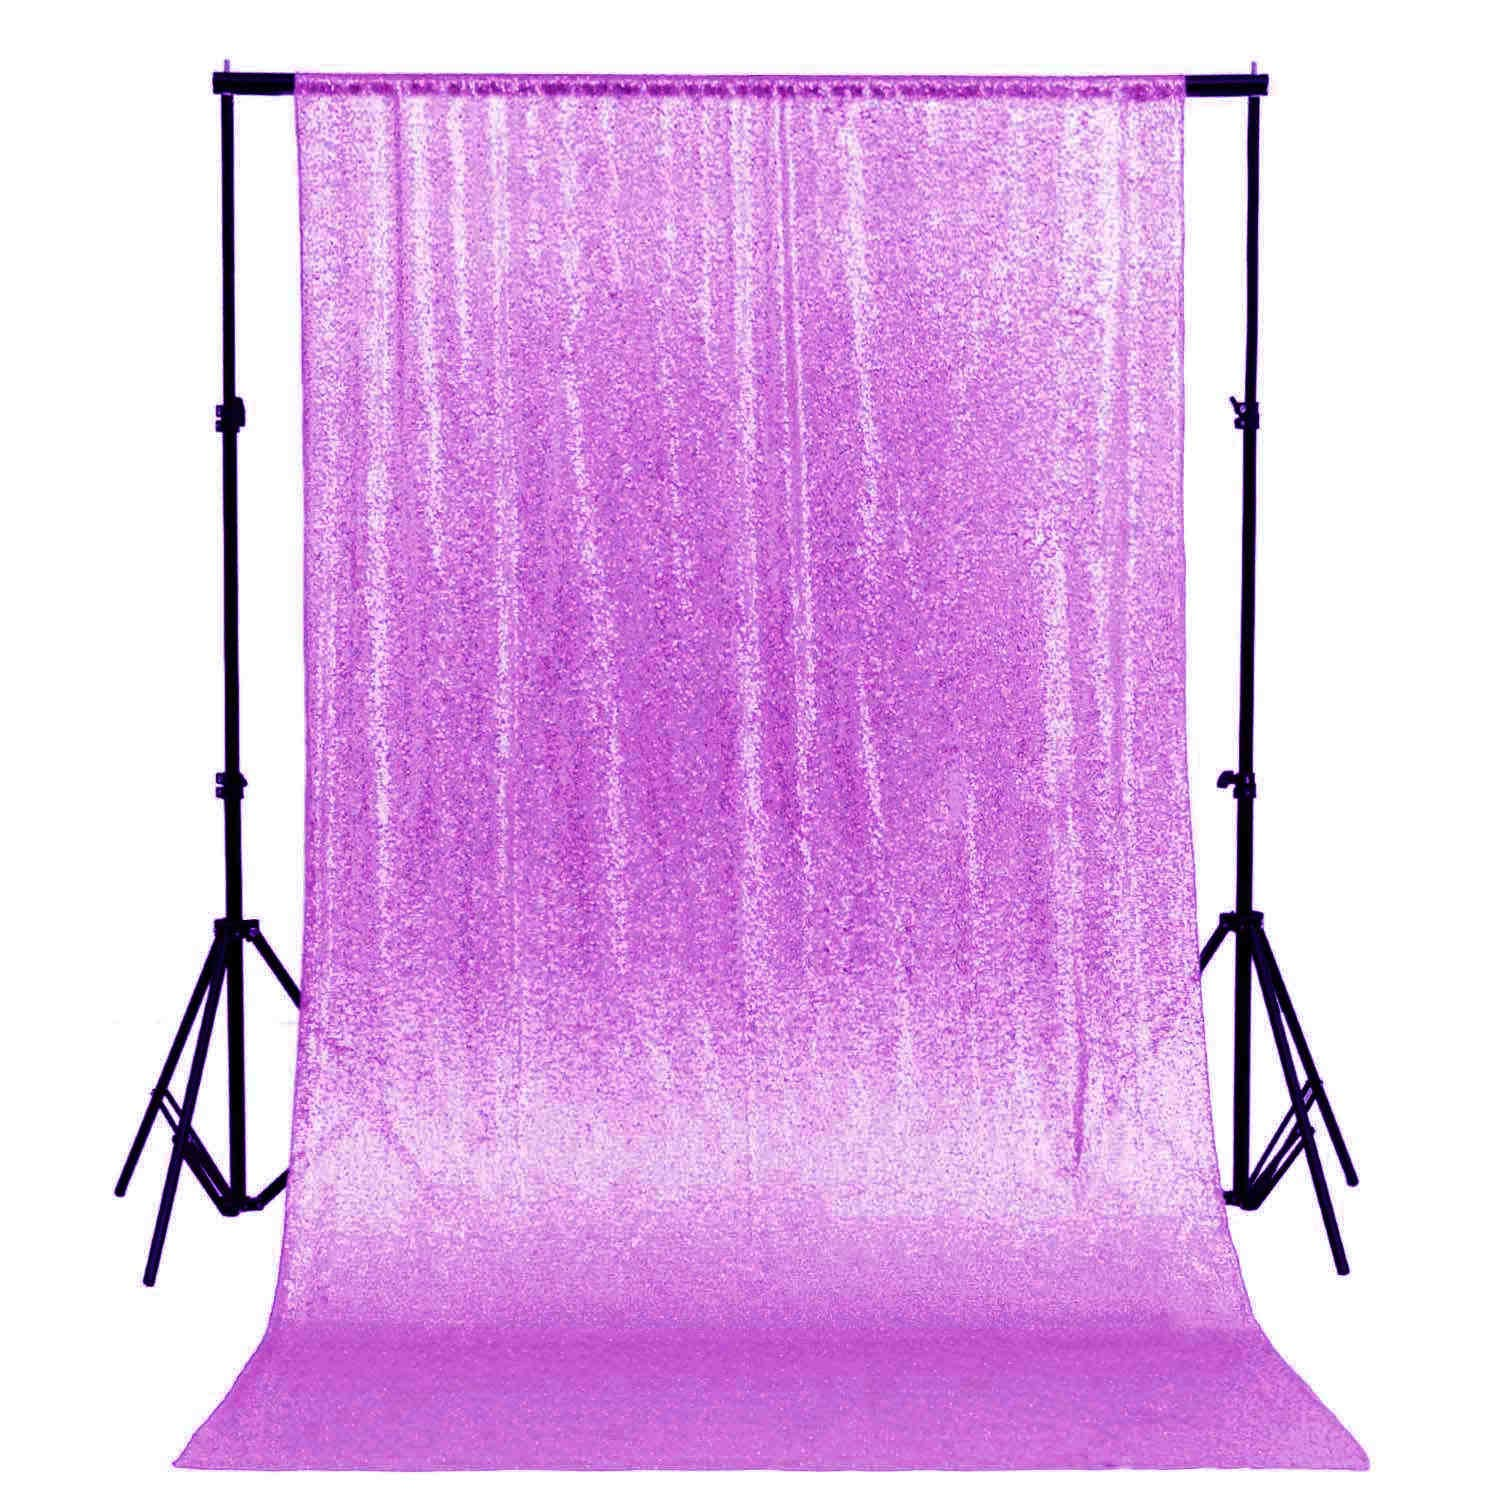 DUOBAO Sequin Backdrop Curtain 4FTx6FT Lavender Glitter Background Lavender Sequin Photo Backdrop Prom Party Decor~0613 by DUOBAO